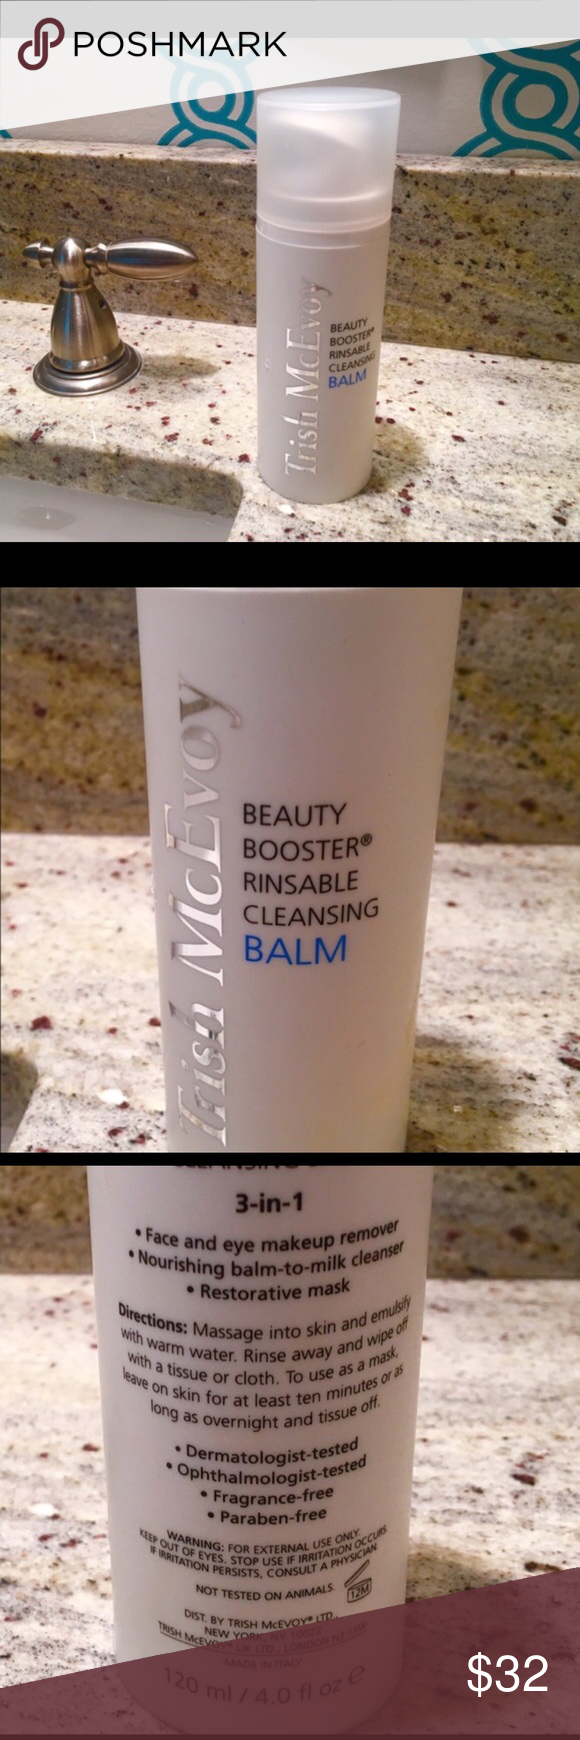 Trish McEvoy 3 in 1 Rinsable Cleansing Balm Cleansing